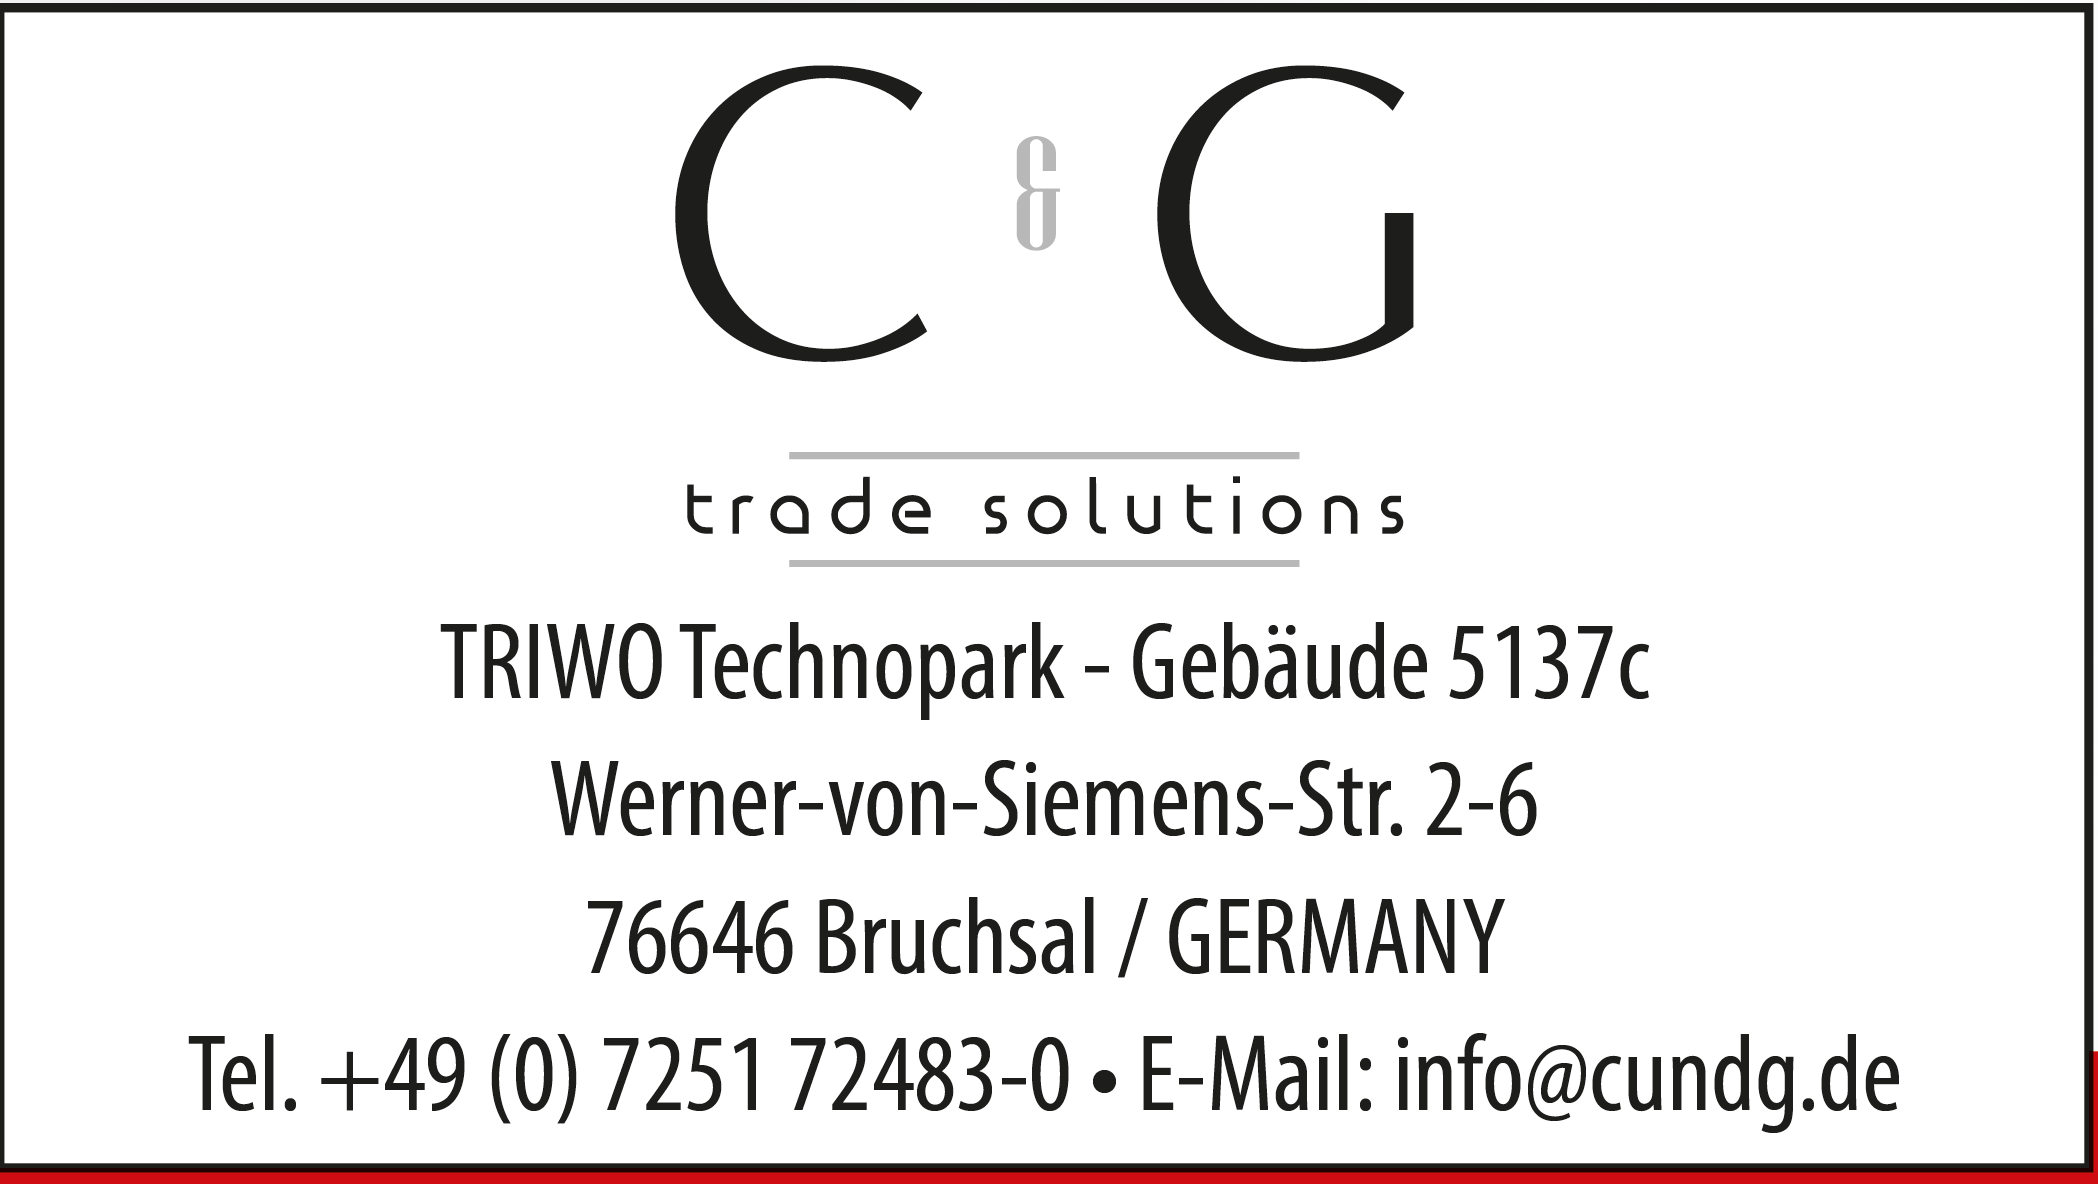 C & G GmbH trade solutions